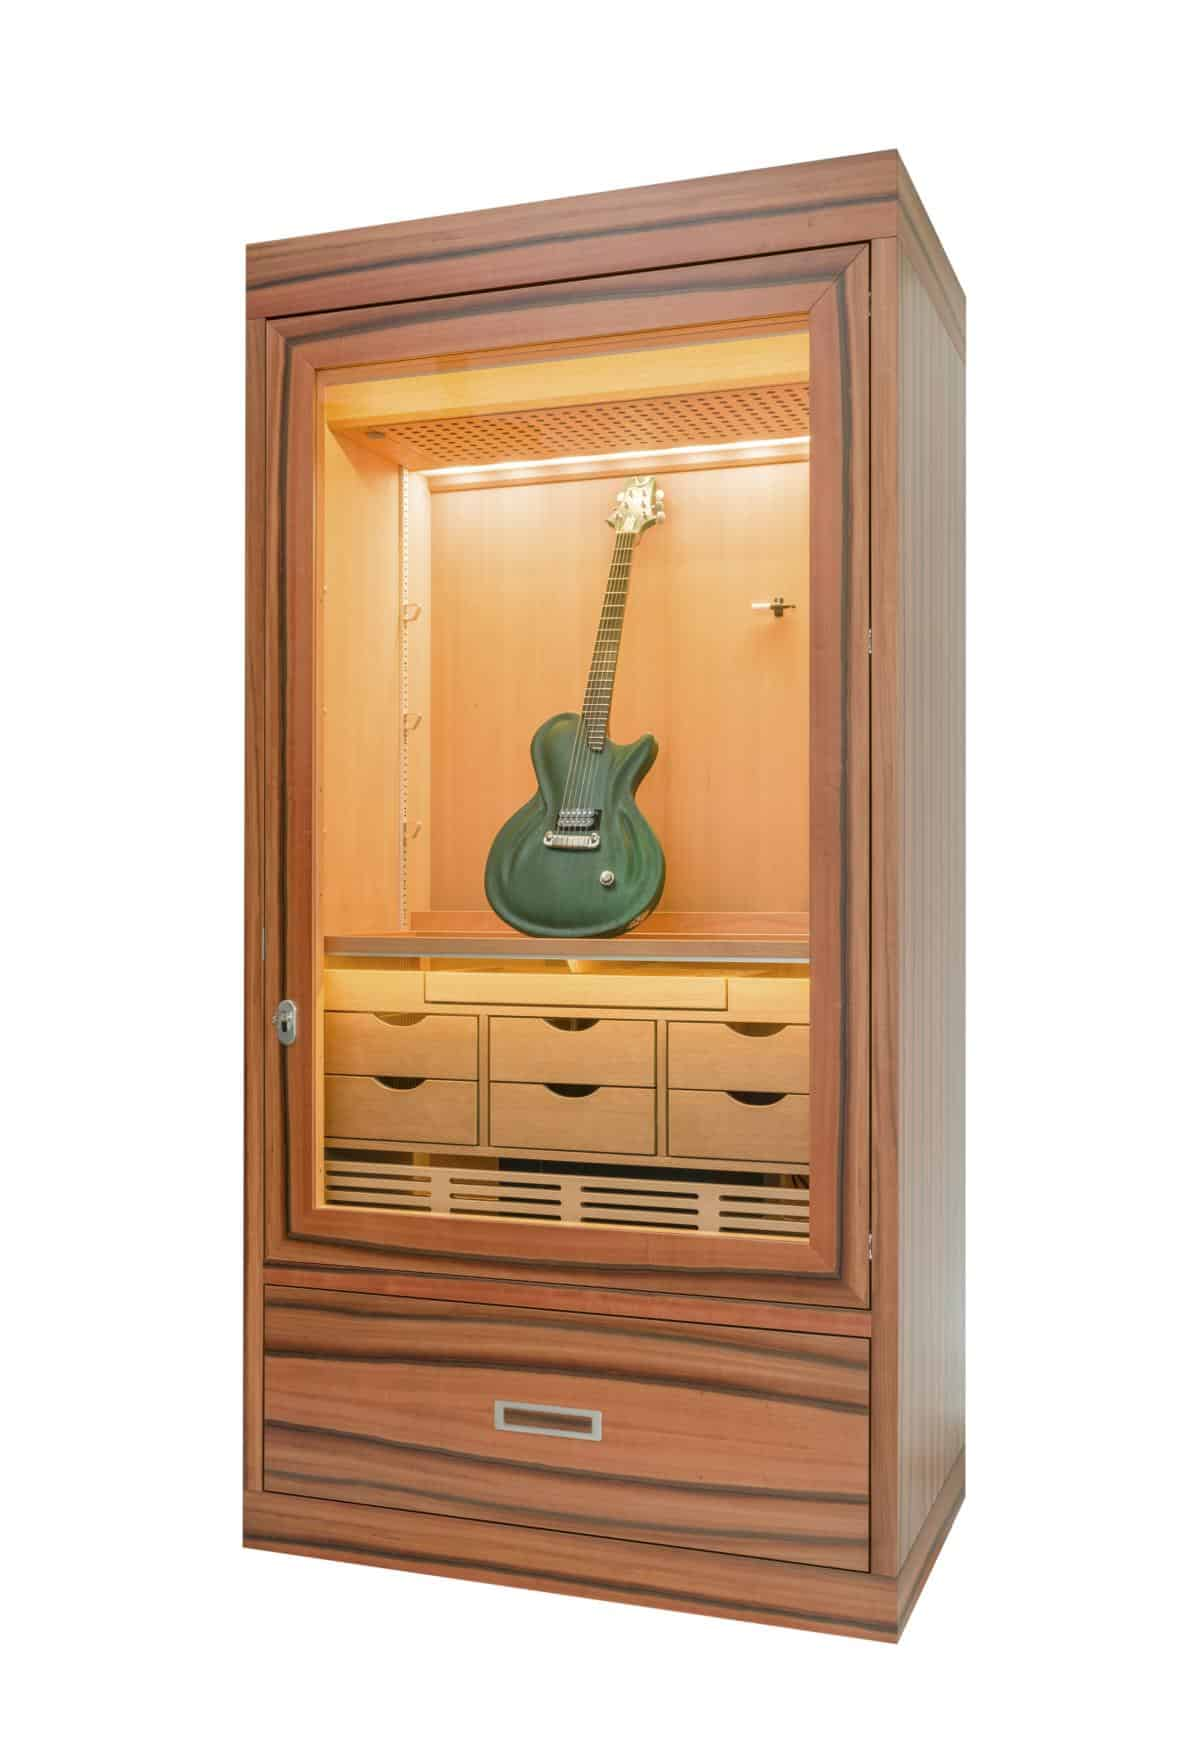 Cabinet Humidor Number One » GERBER Humidors